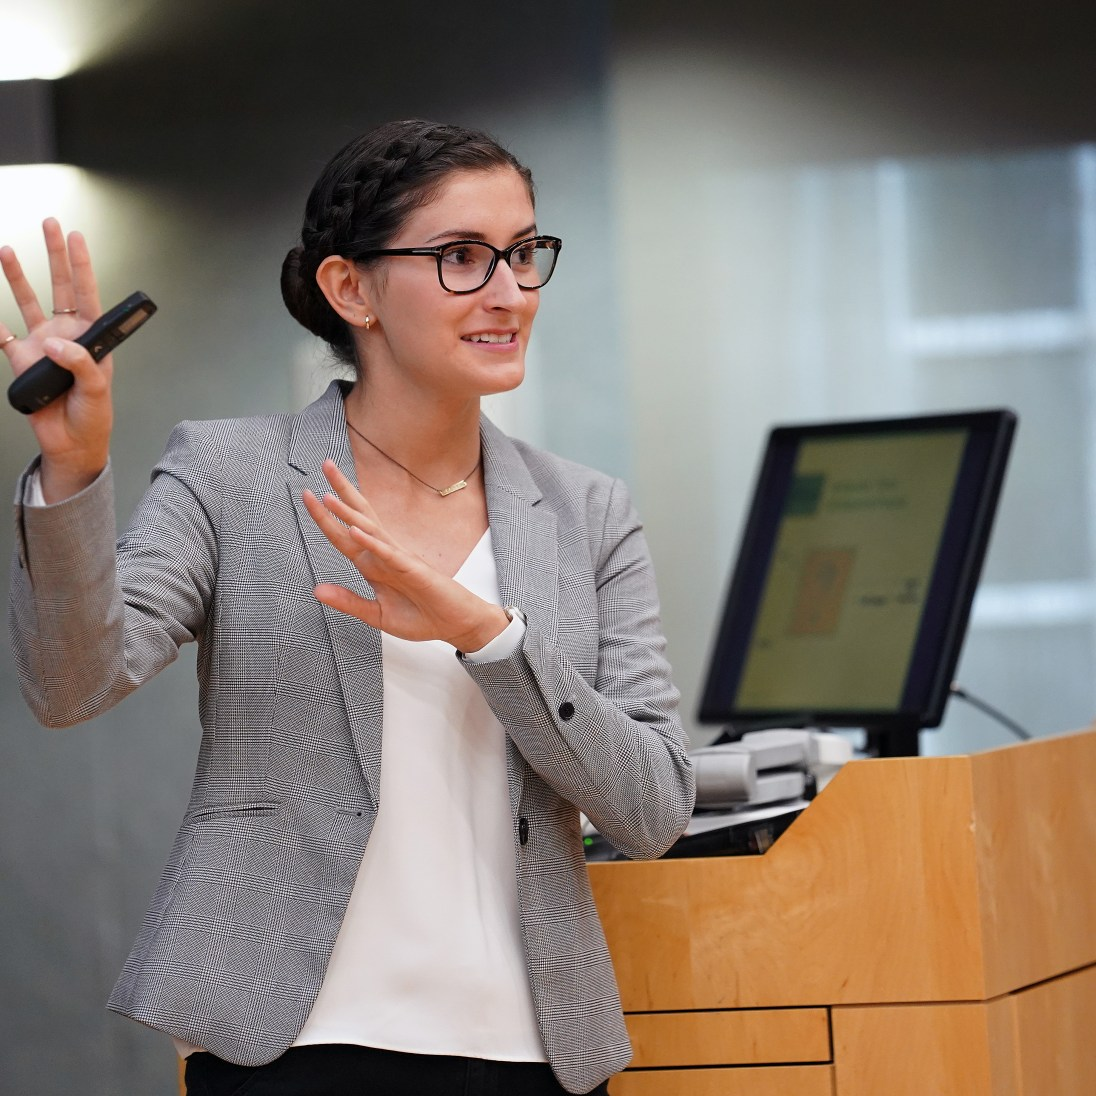 Summer Science Institute participant Kelly Flynn researched the effects of environmental stress on floral development. She presented her findings inside the packed Hurley Convergence Center Digital Auditorium. Photos by Suzanne Carr Rossi.